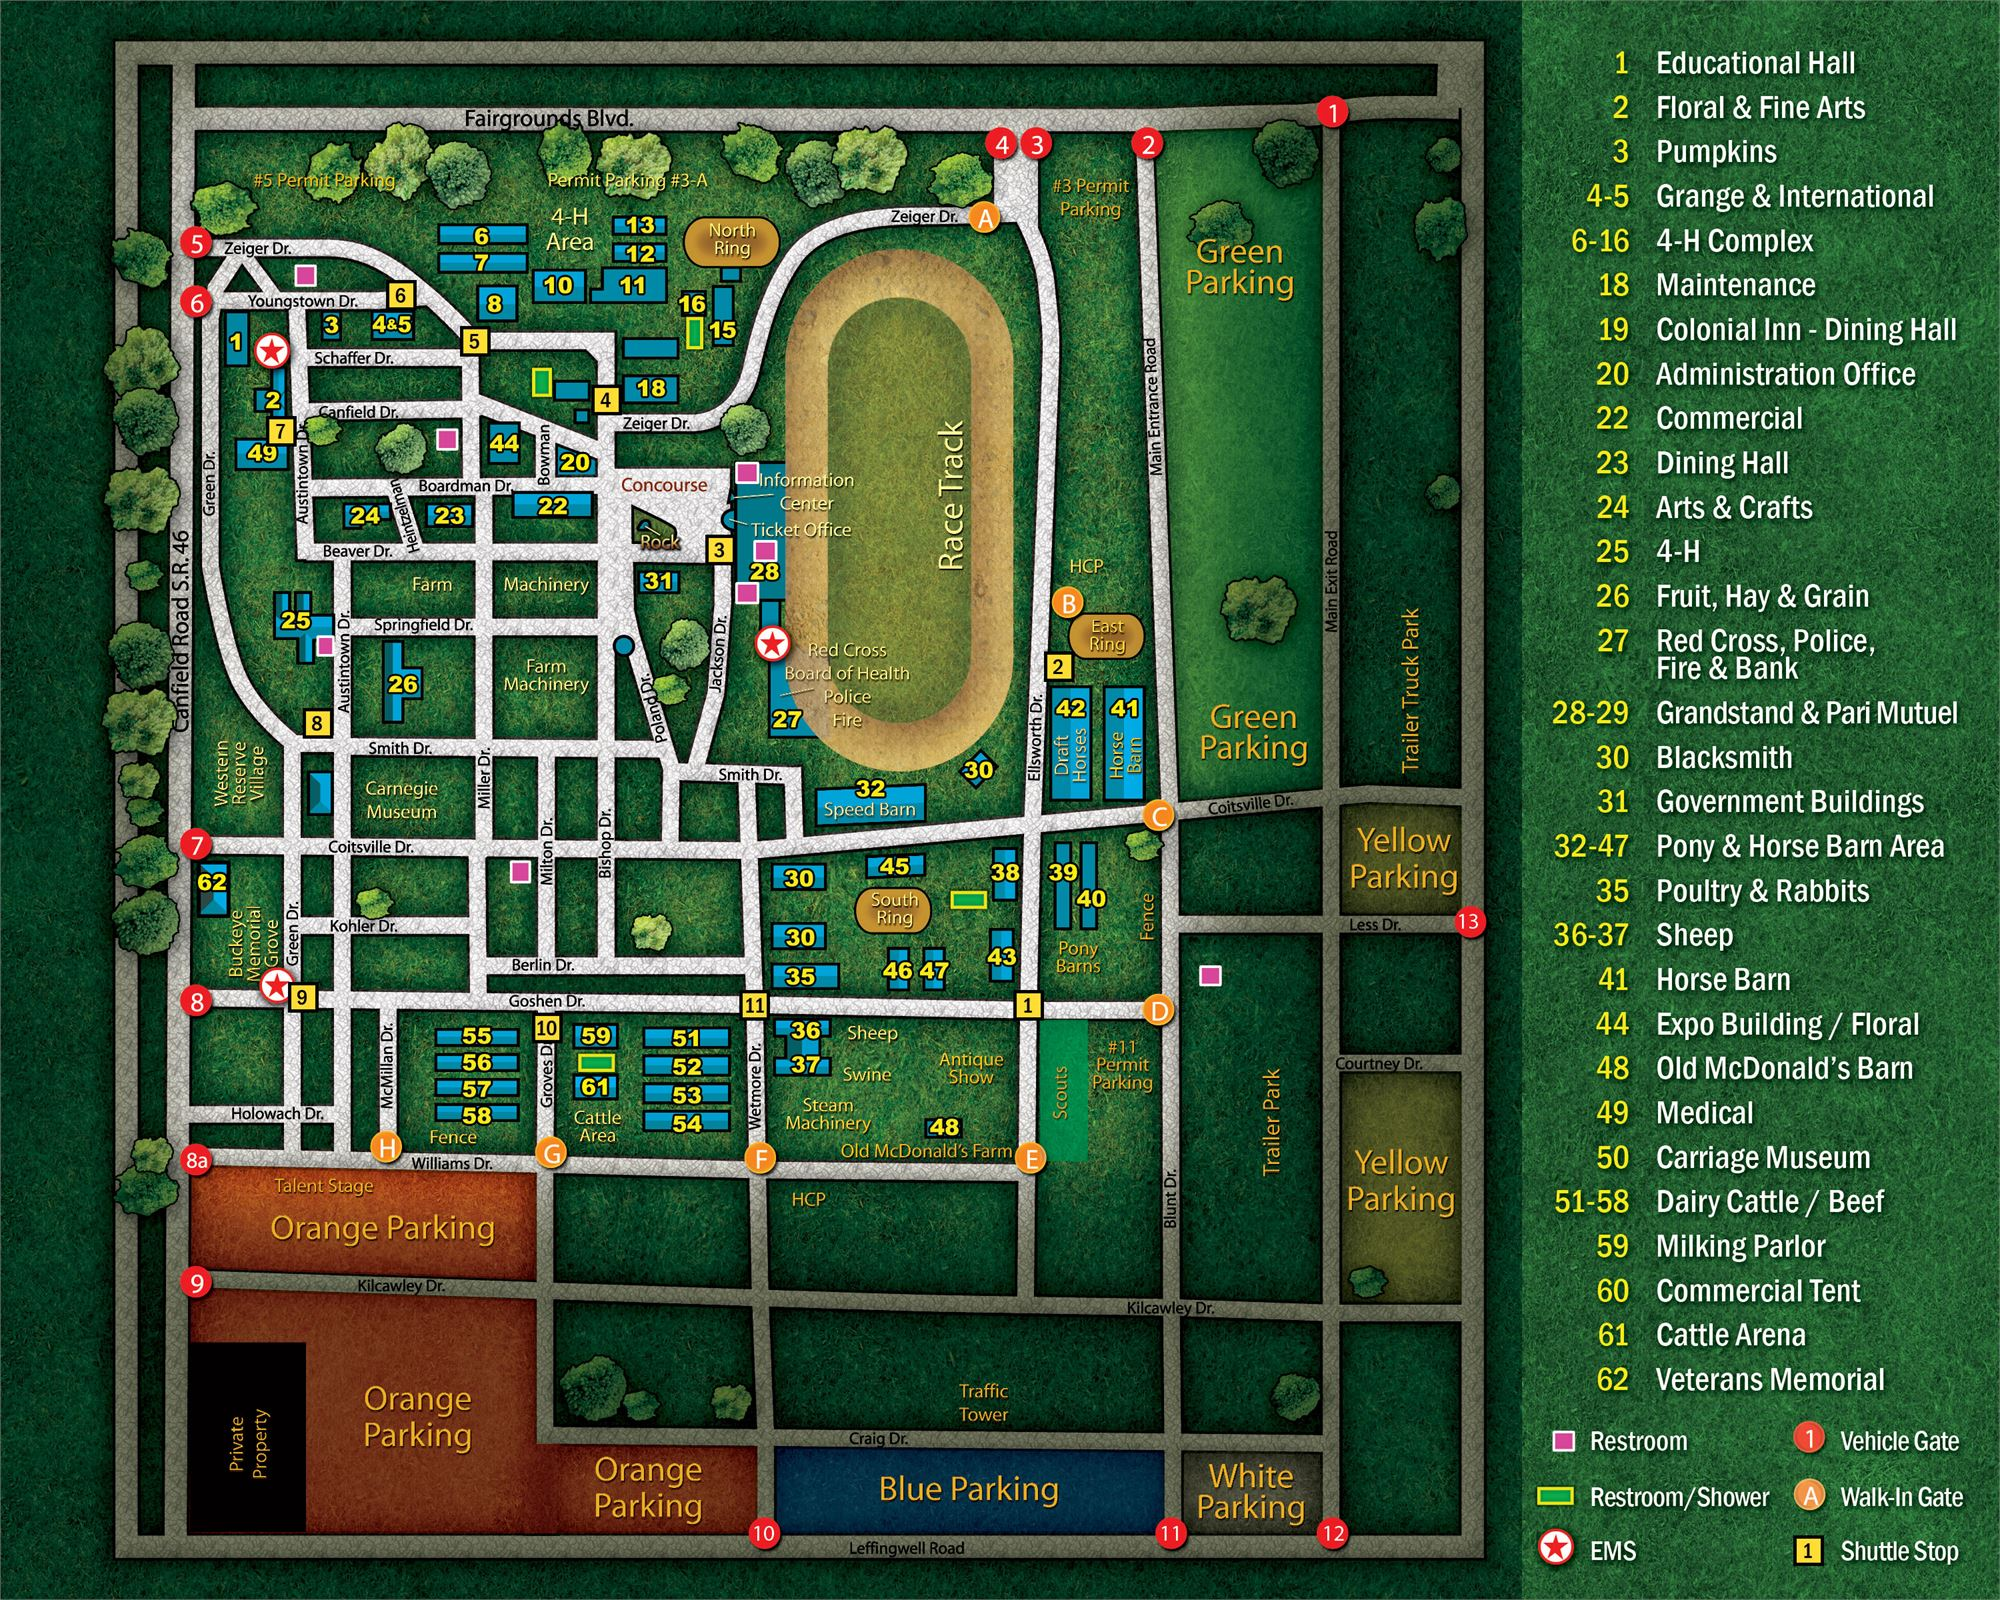 Map of the Canfield Fair and Canfield Fairgrounds